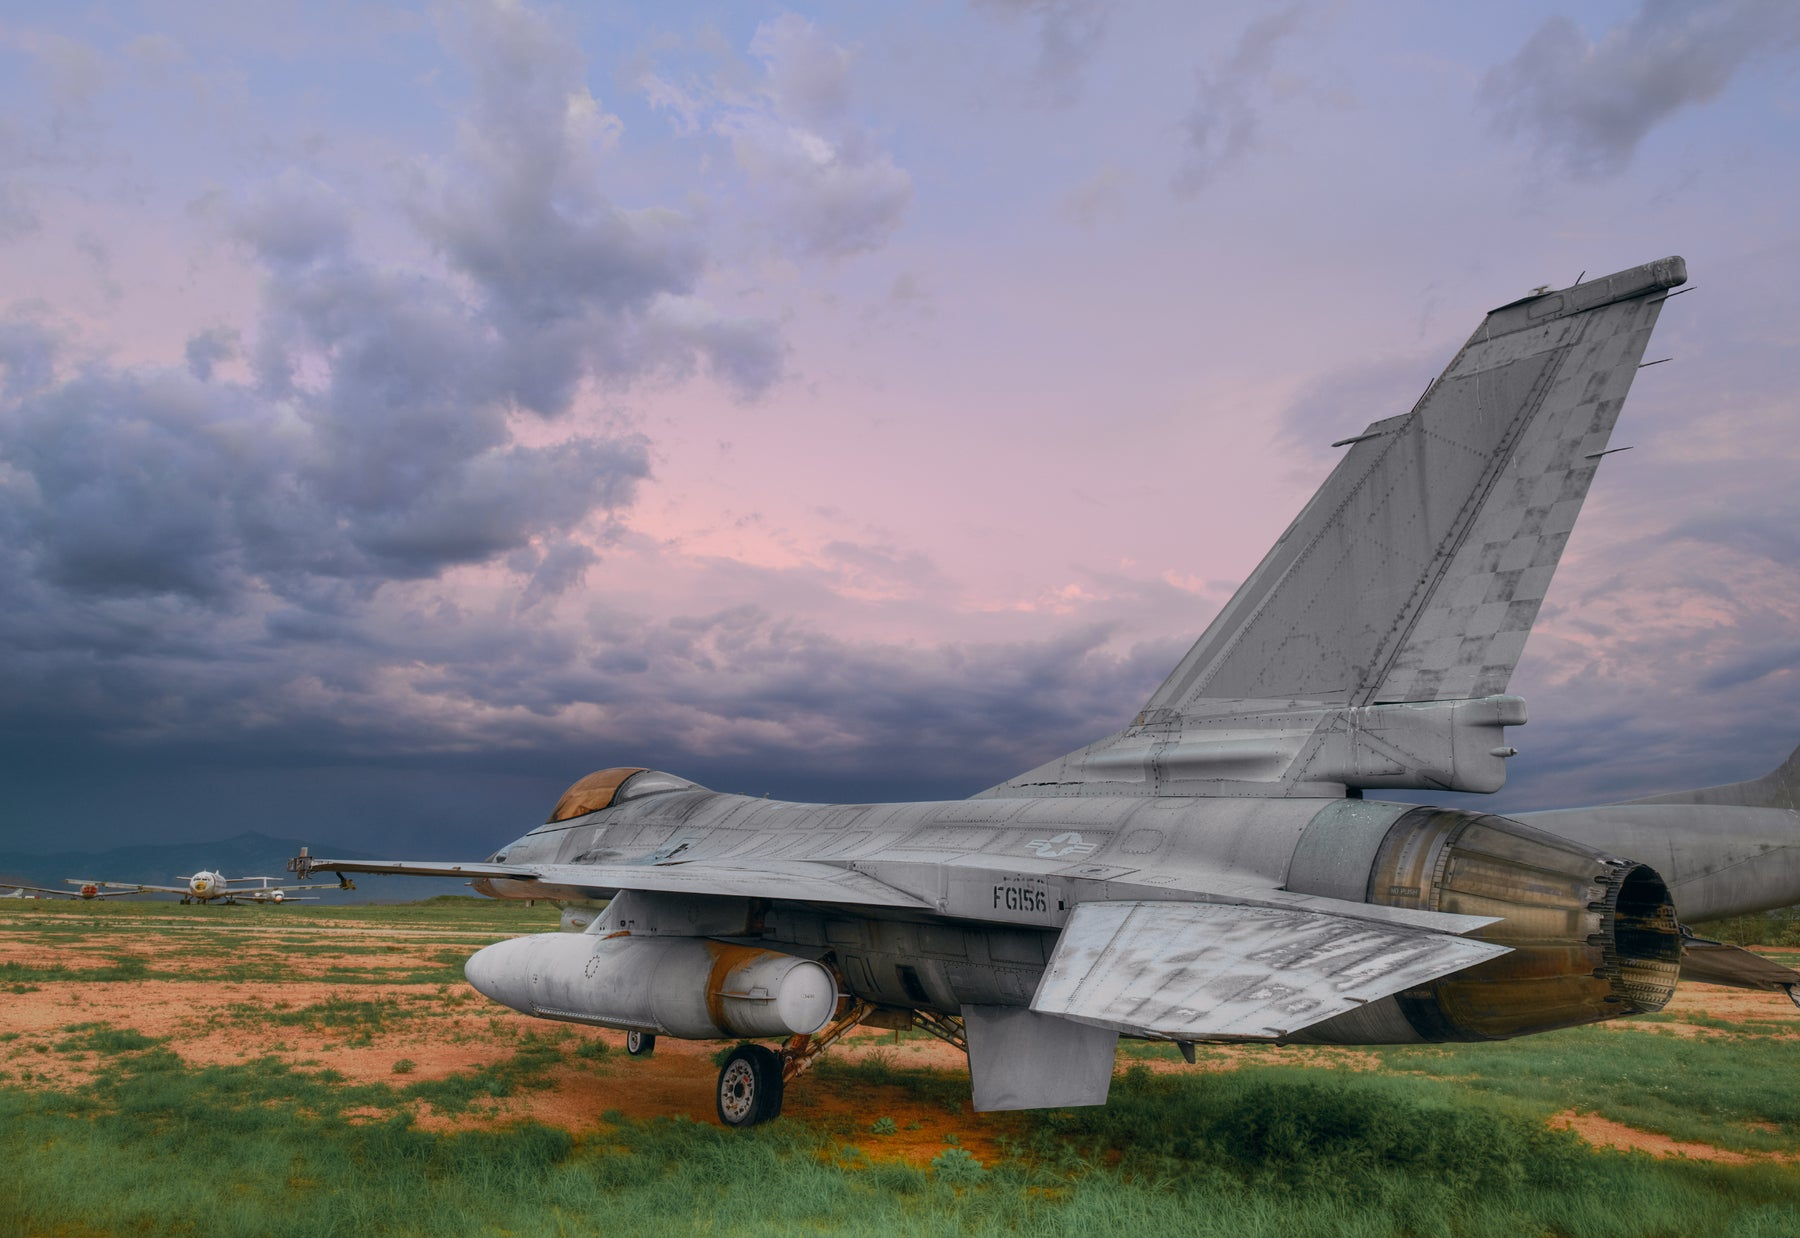 Old F-16 fighter jet sitting on a grass and dirt field in Tucson Arizona with a storm on the horizon